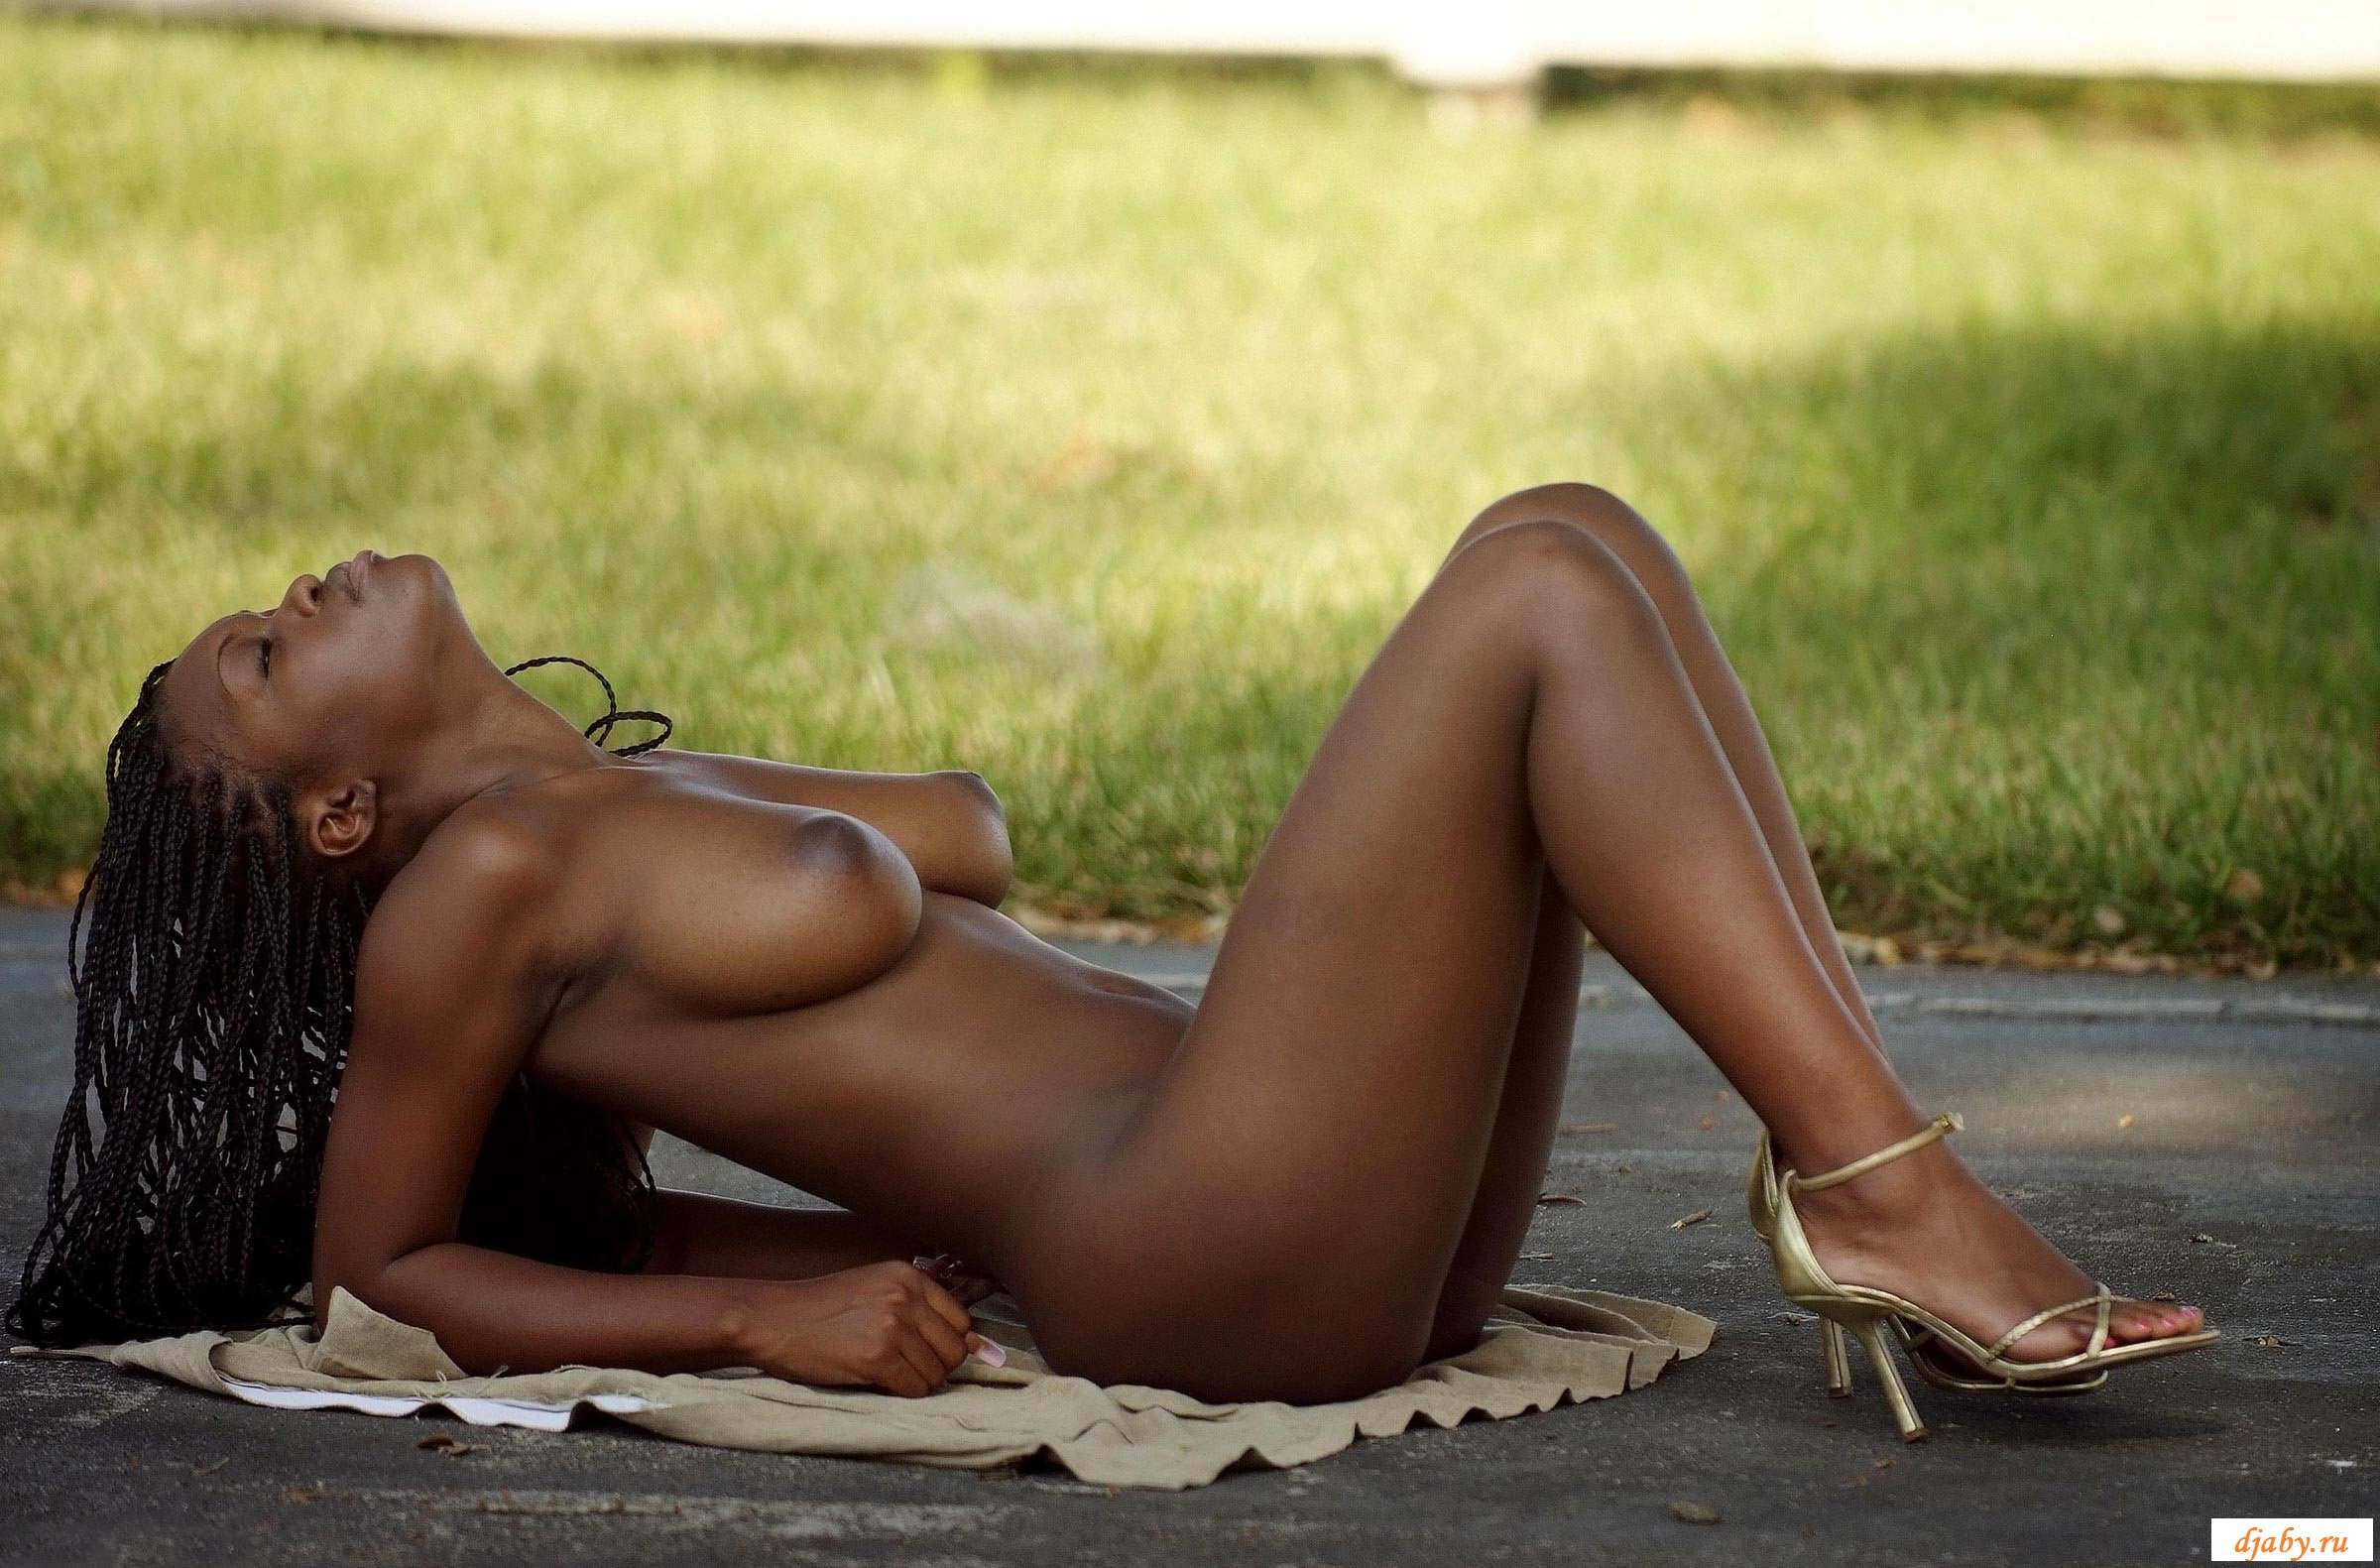 all-black-girls-naked-playboy-centerfold